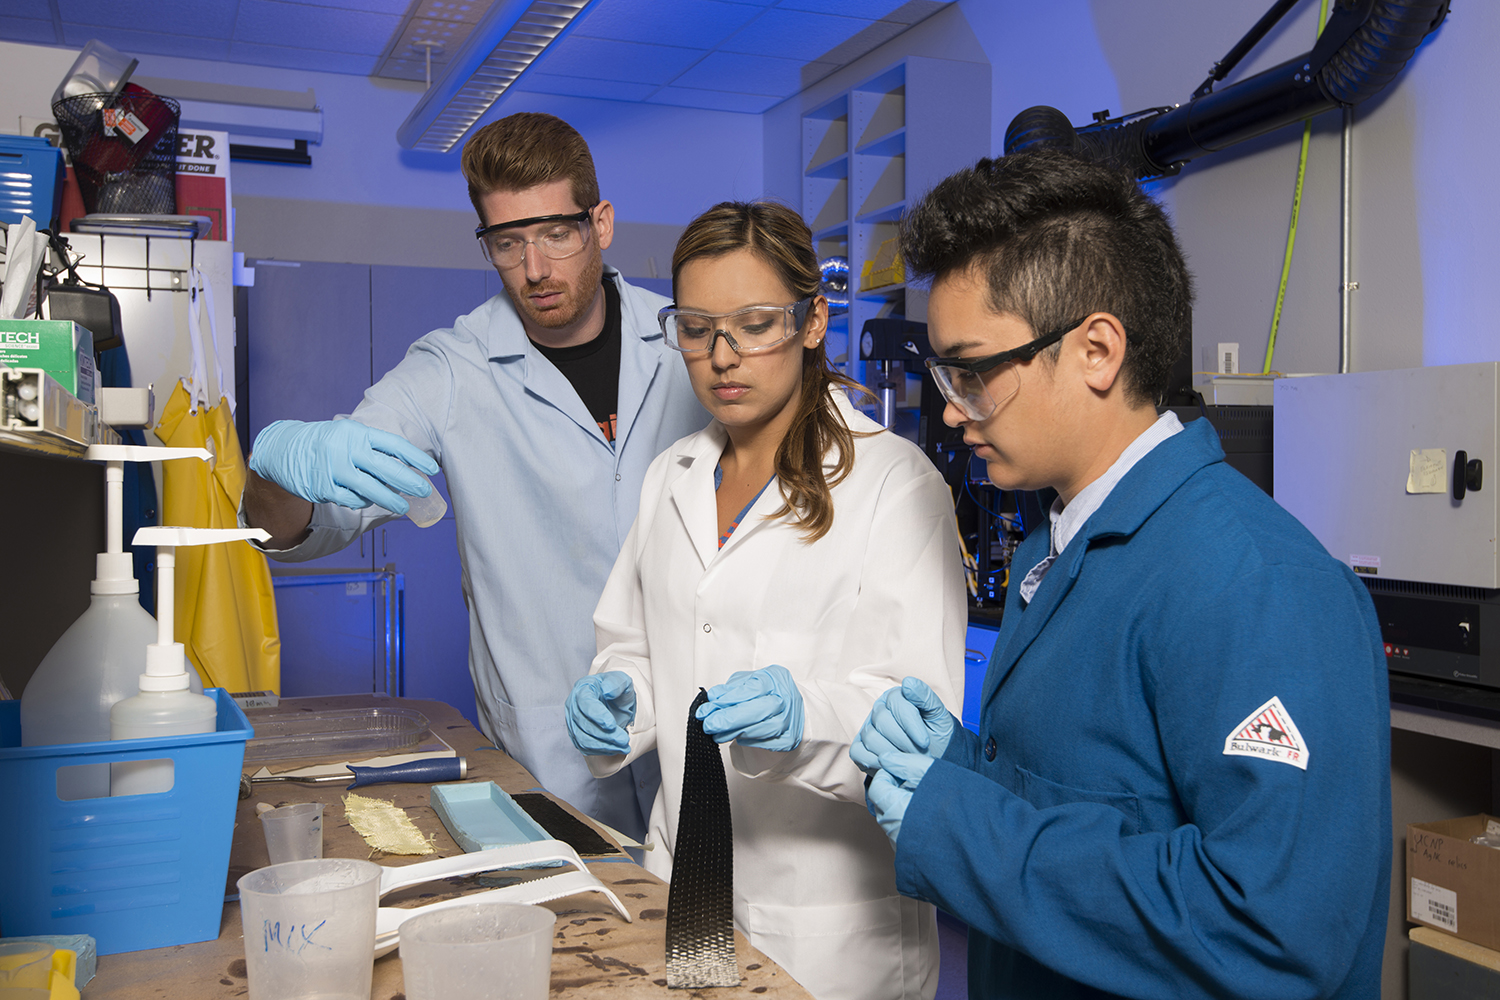 Photo of three people working in lab